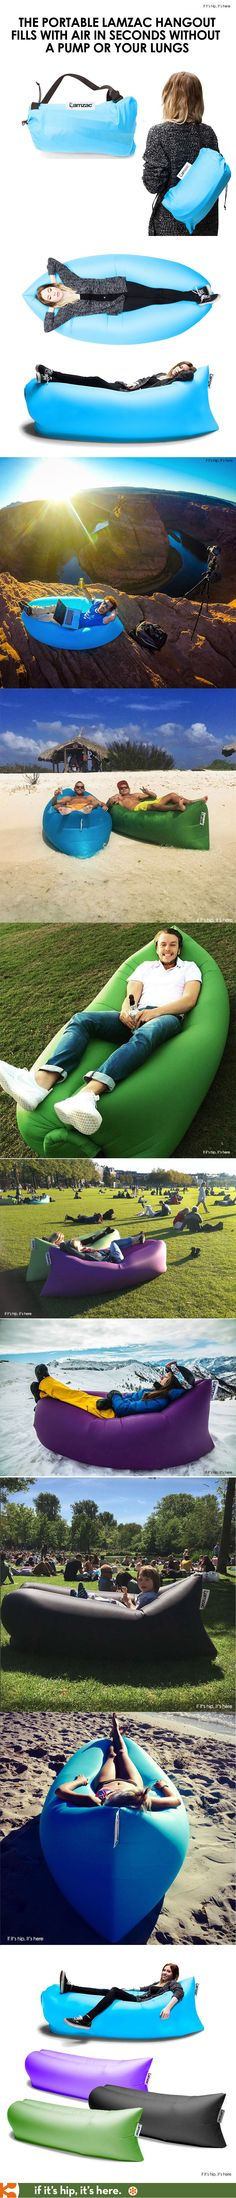 The Lamzac Hangout Inflatable Lounge is Selling Like